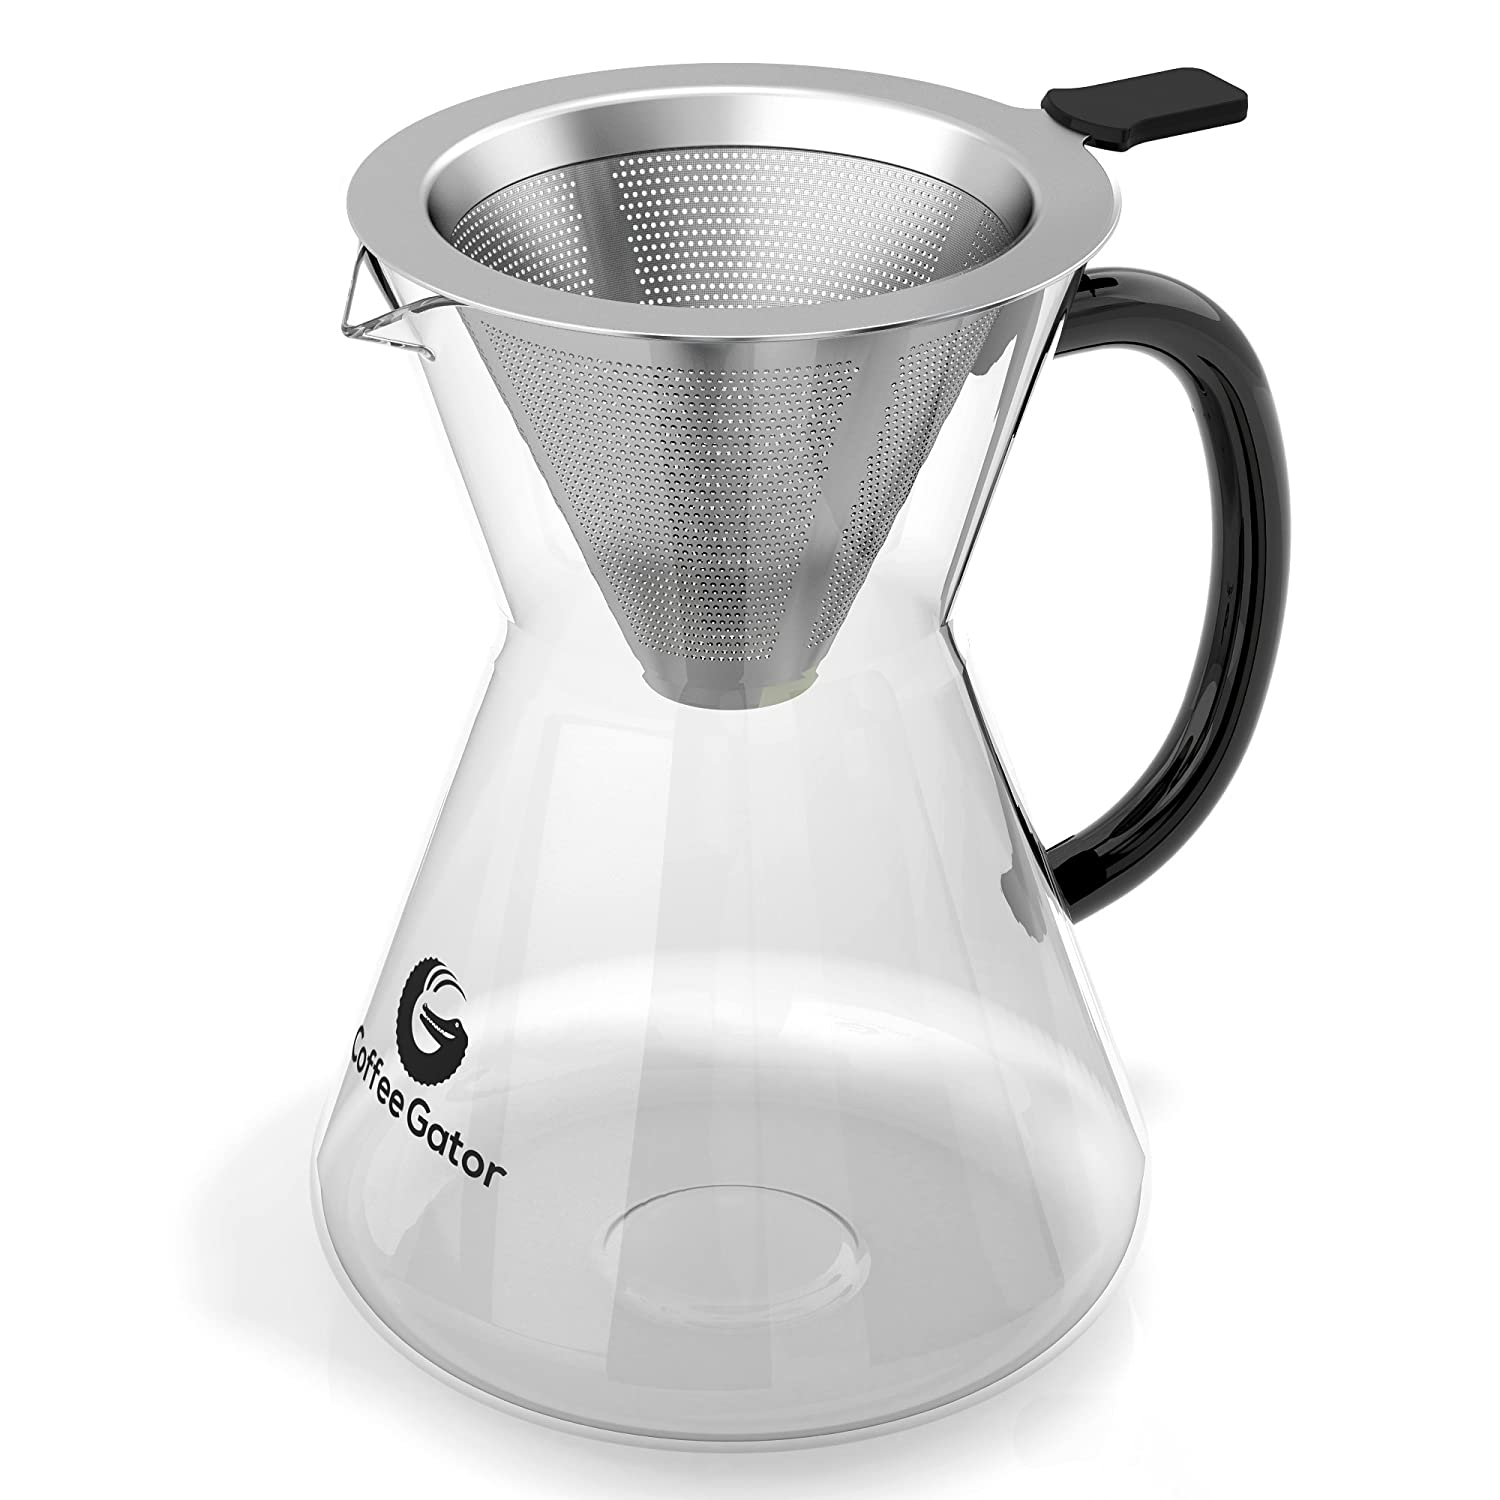 Best 3-cup Coffee Makers - pour over